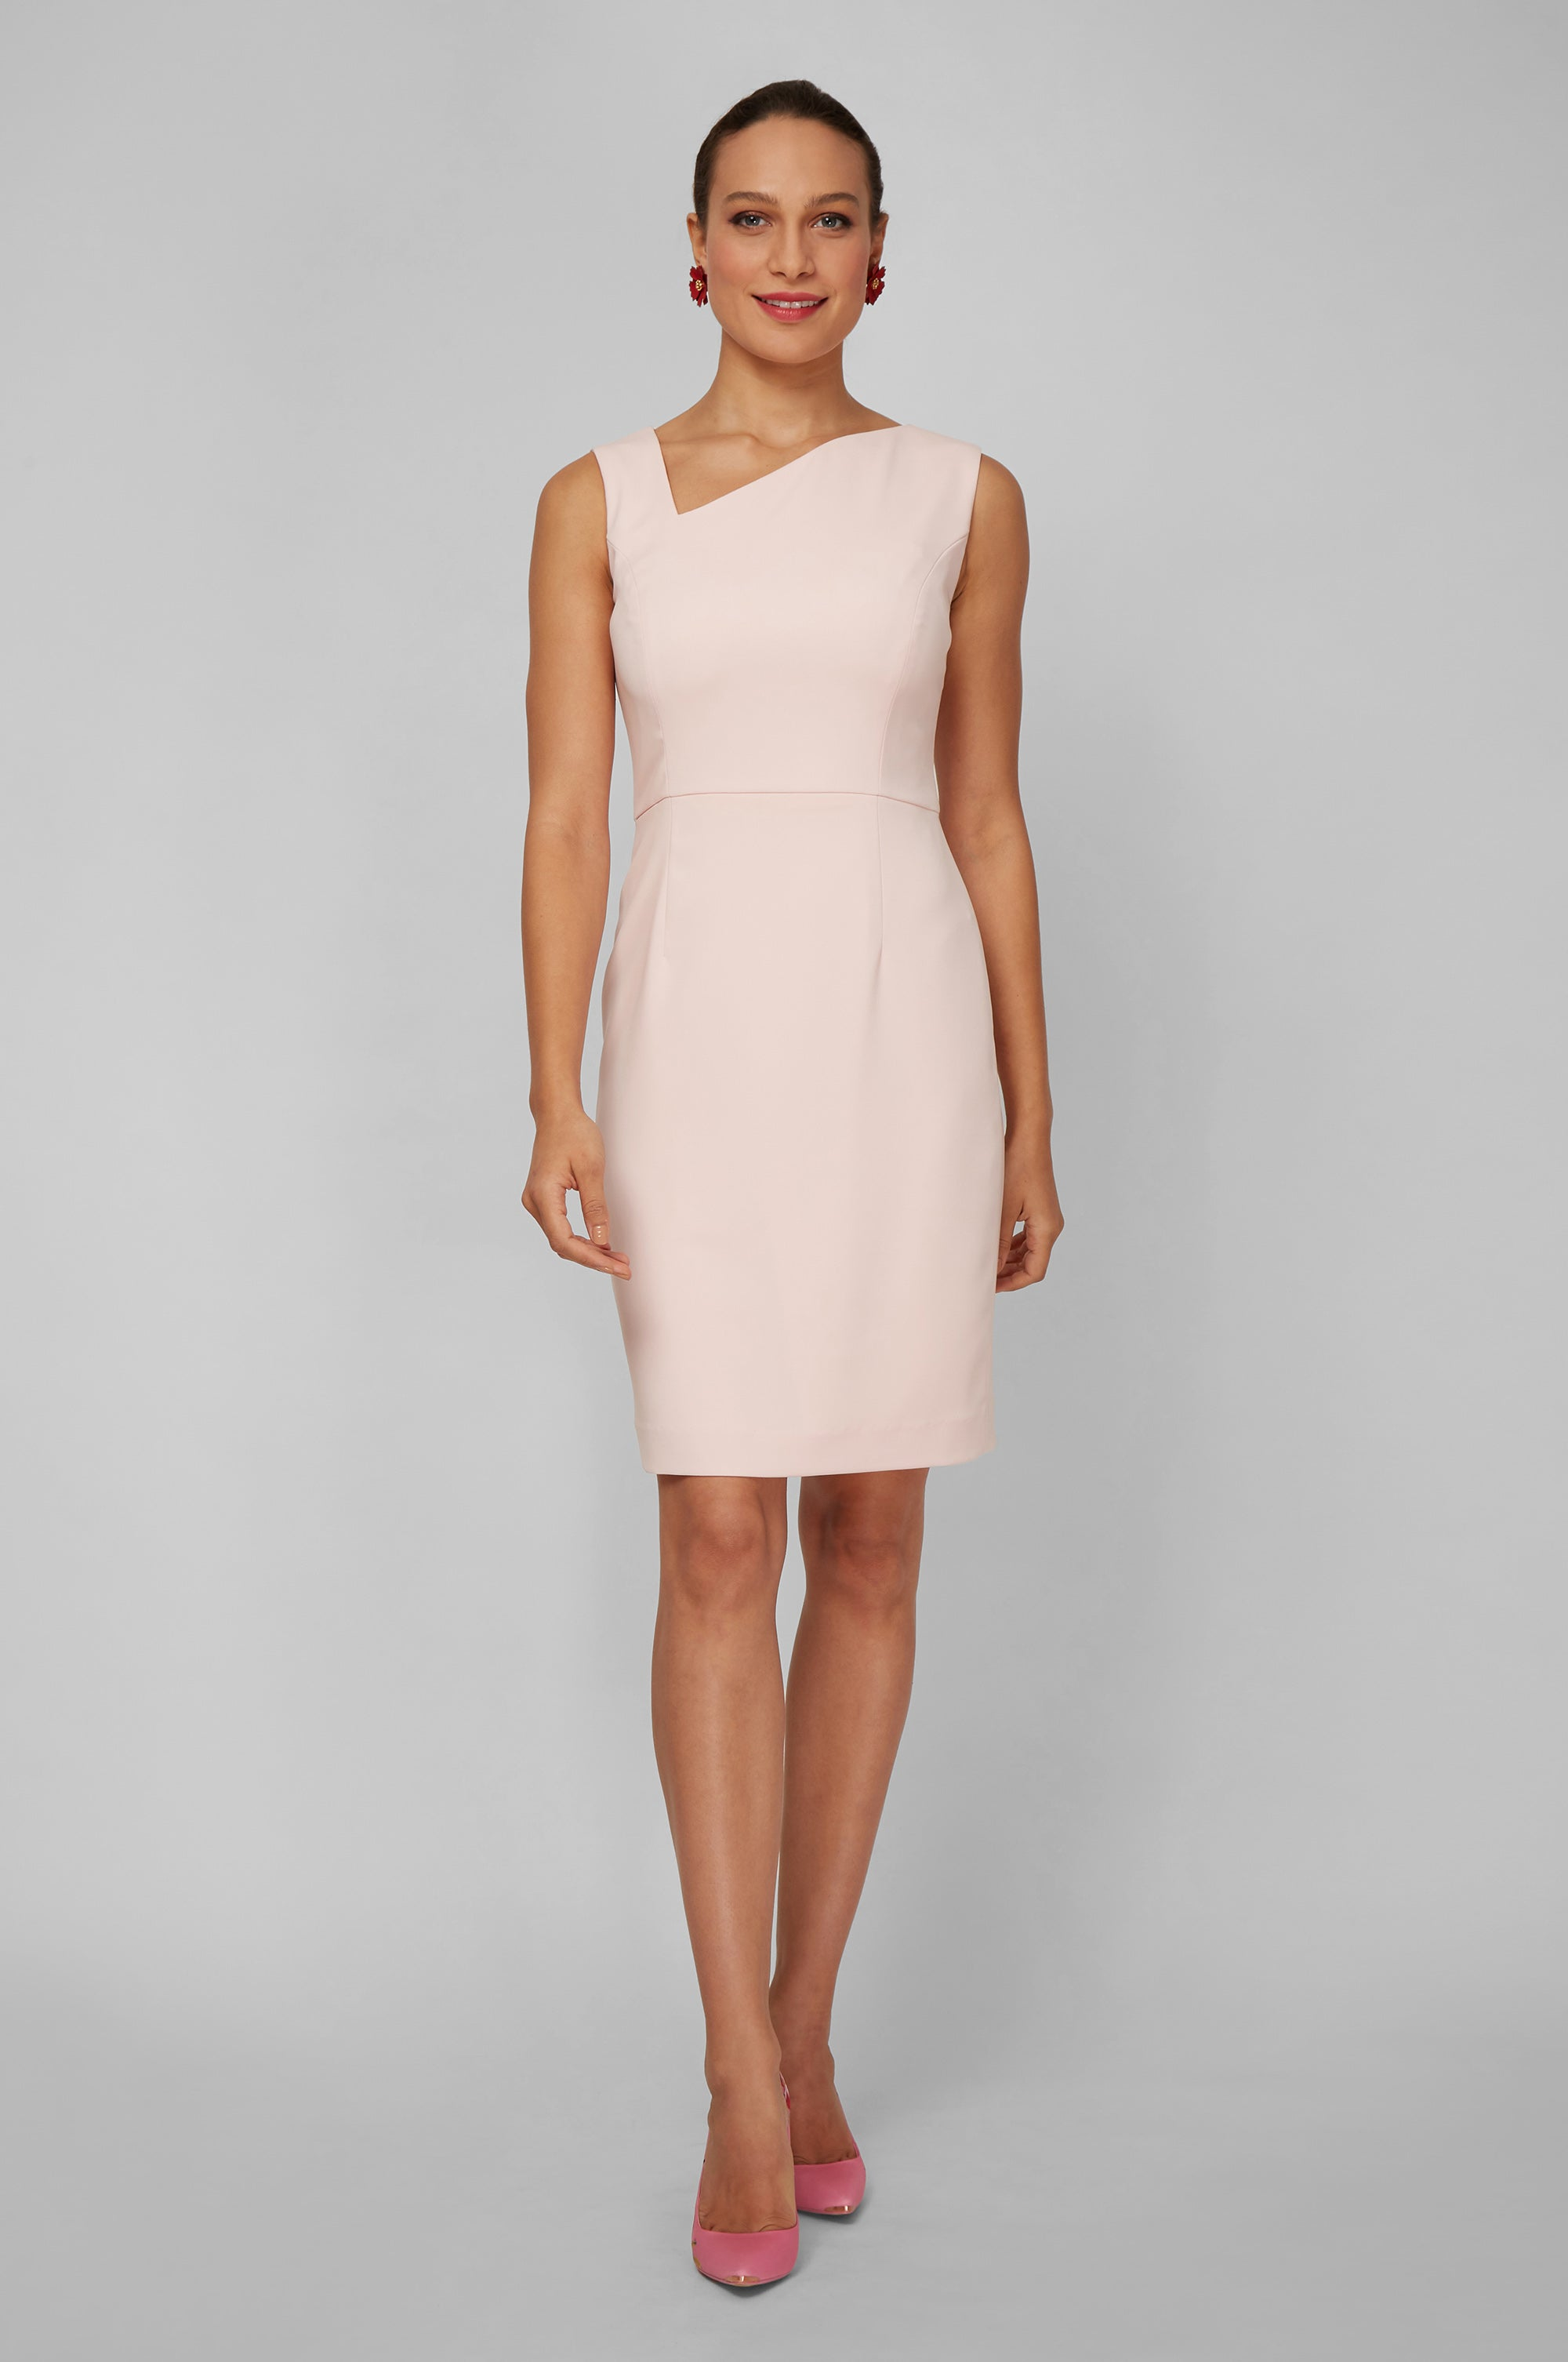 Women's Clea Dress in Ballerina Pink | Nora Gardner - Front